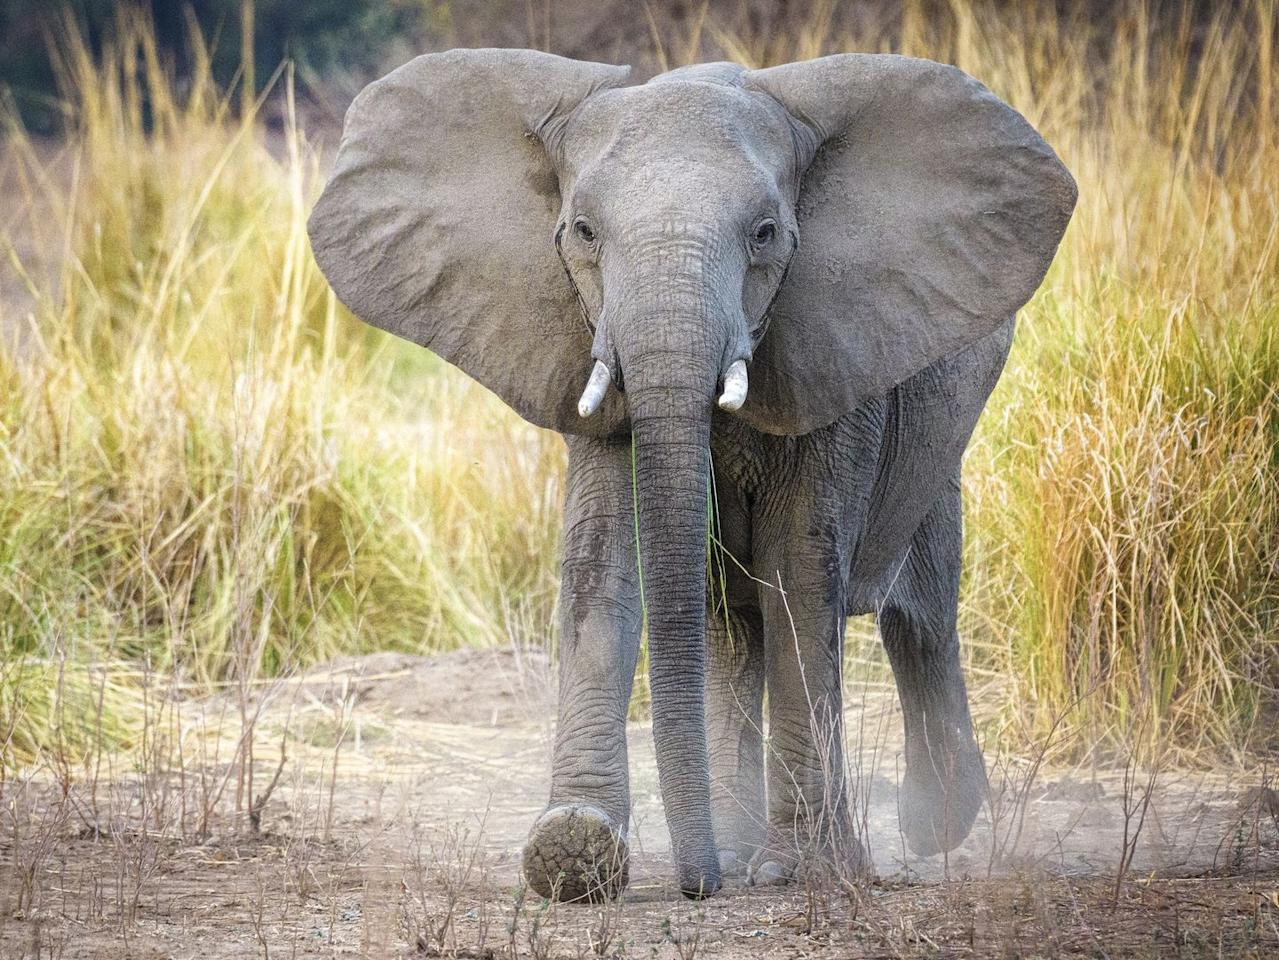 "<p>There are over <a href=""https://www.worldwildlife.org/species/african-elephant"" target=""_blank"">415,000 African elephants</a> left in the wild, and the species is considered vulnerable. It's particularly worrying when you consider that Asian elephants are already on the 'endangered' list. The African elephant population has been in sharp decline because of poaching for ivory. </p>"